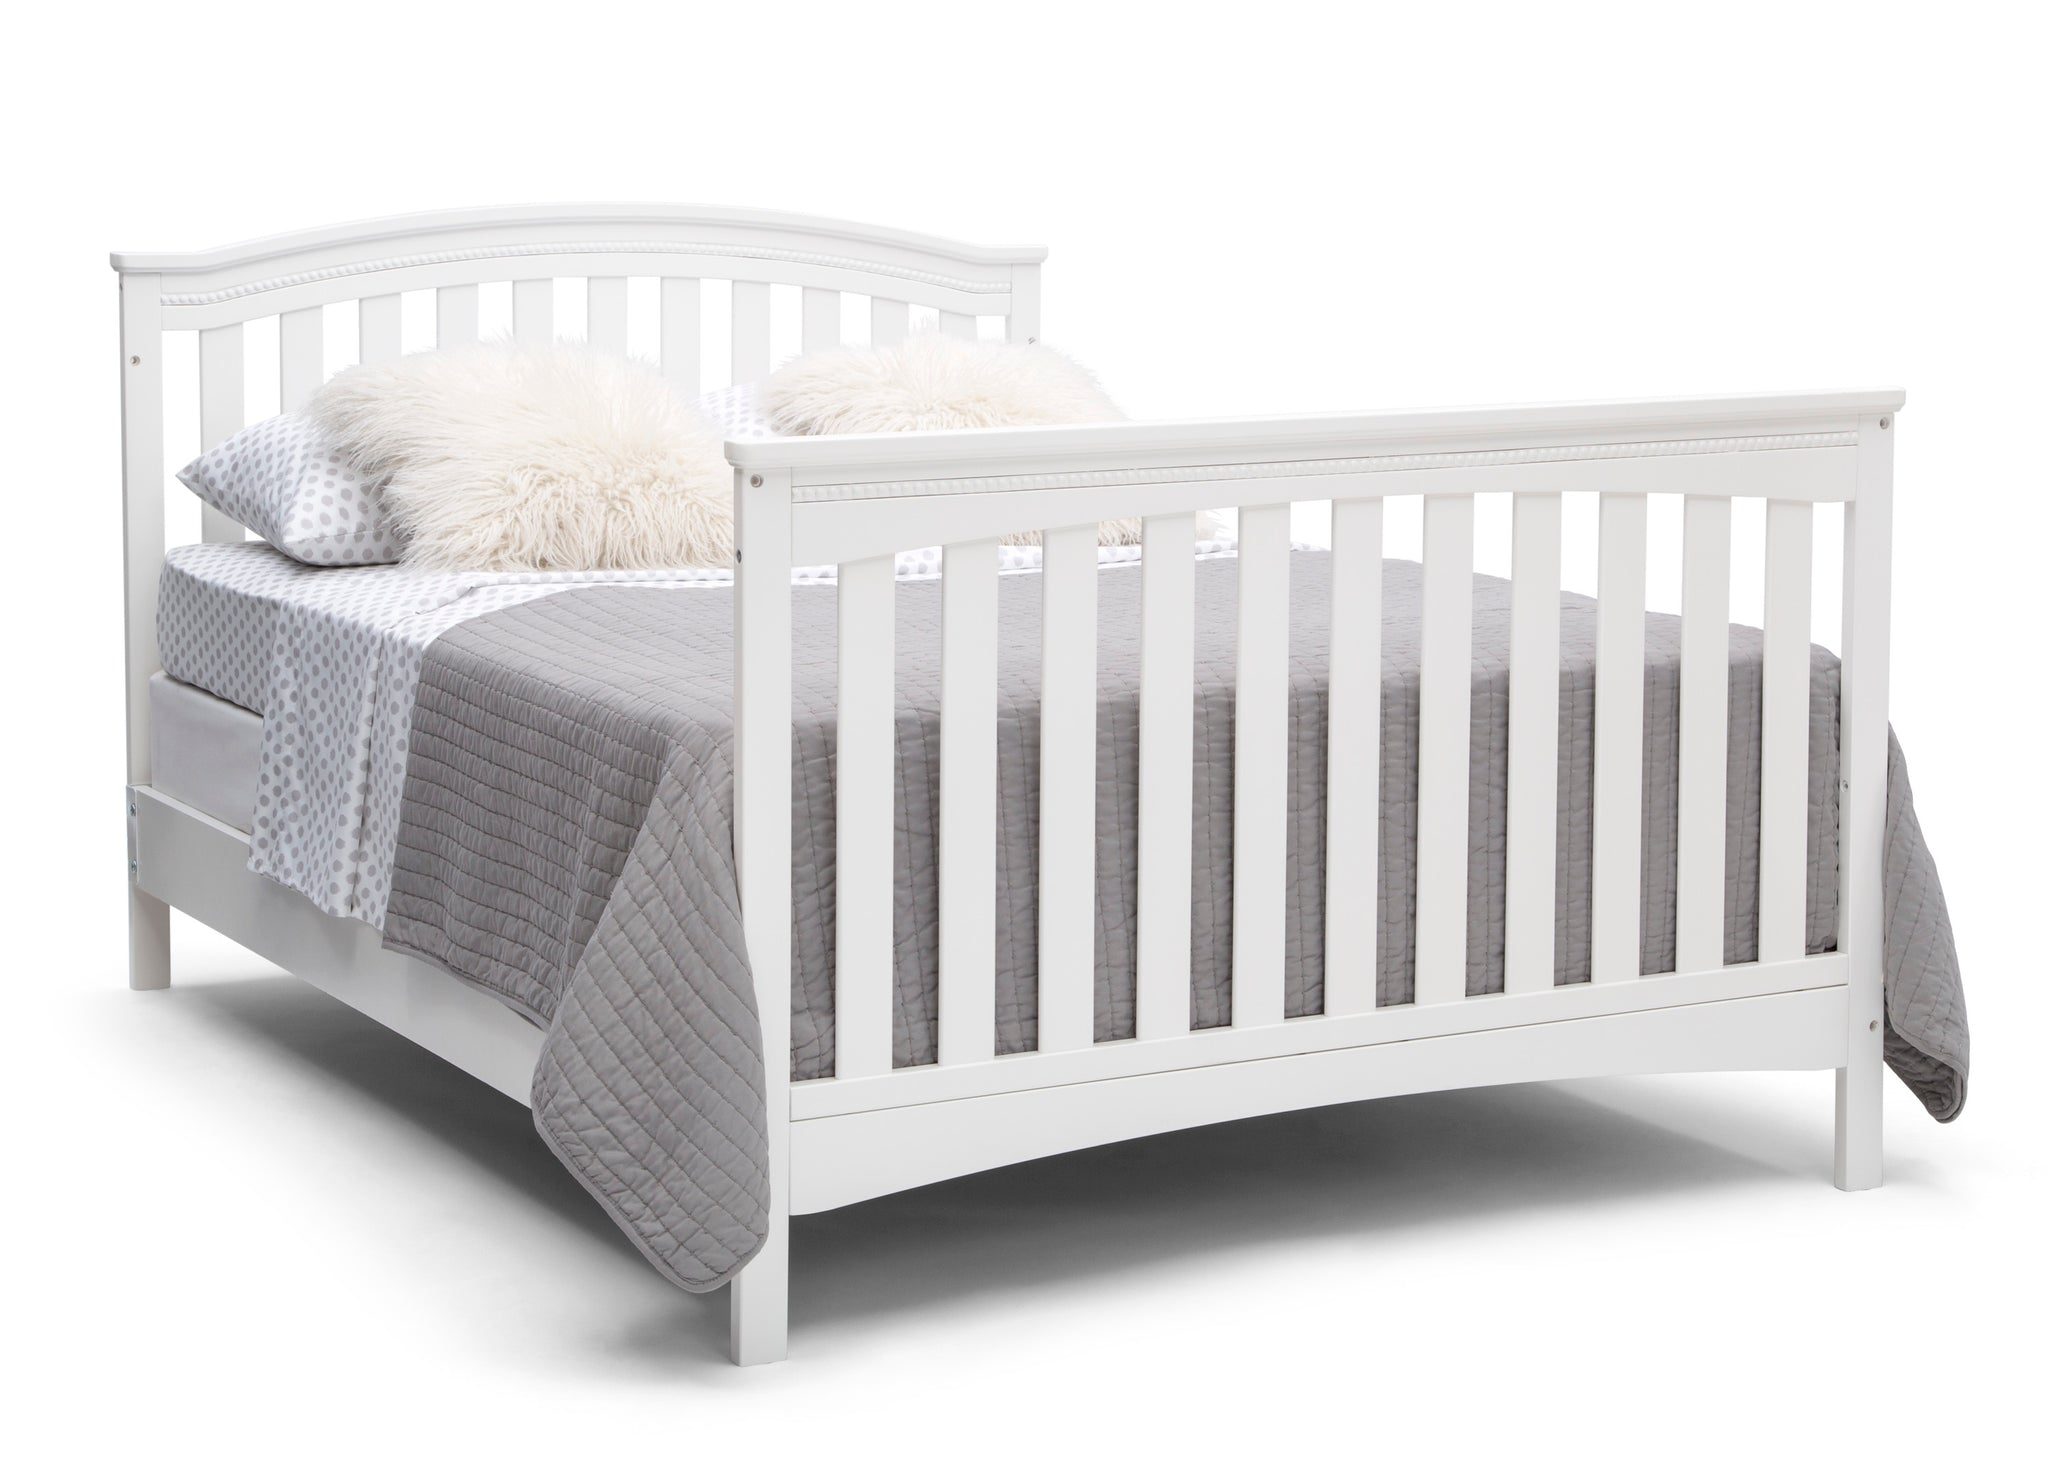 Delta Children Bianca White (130) Waverly 6-in-1 Convertible Crib, Right Full Bed with Headboard and Footboard Silo View